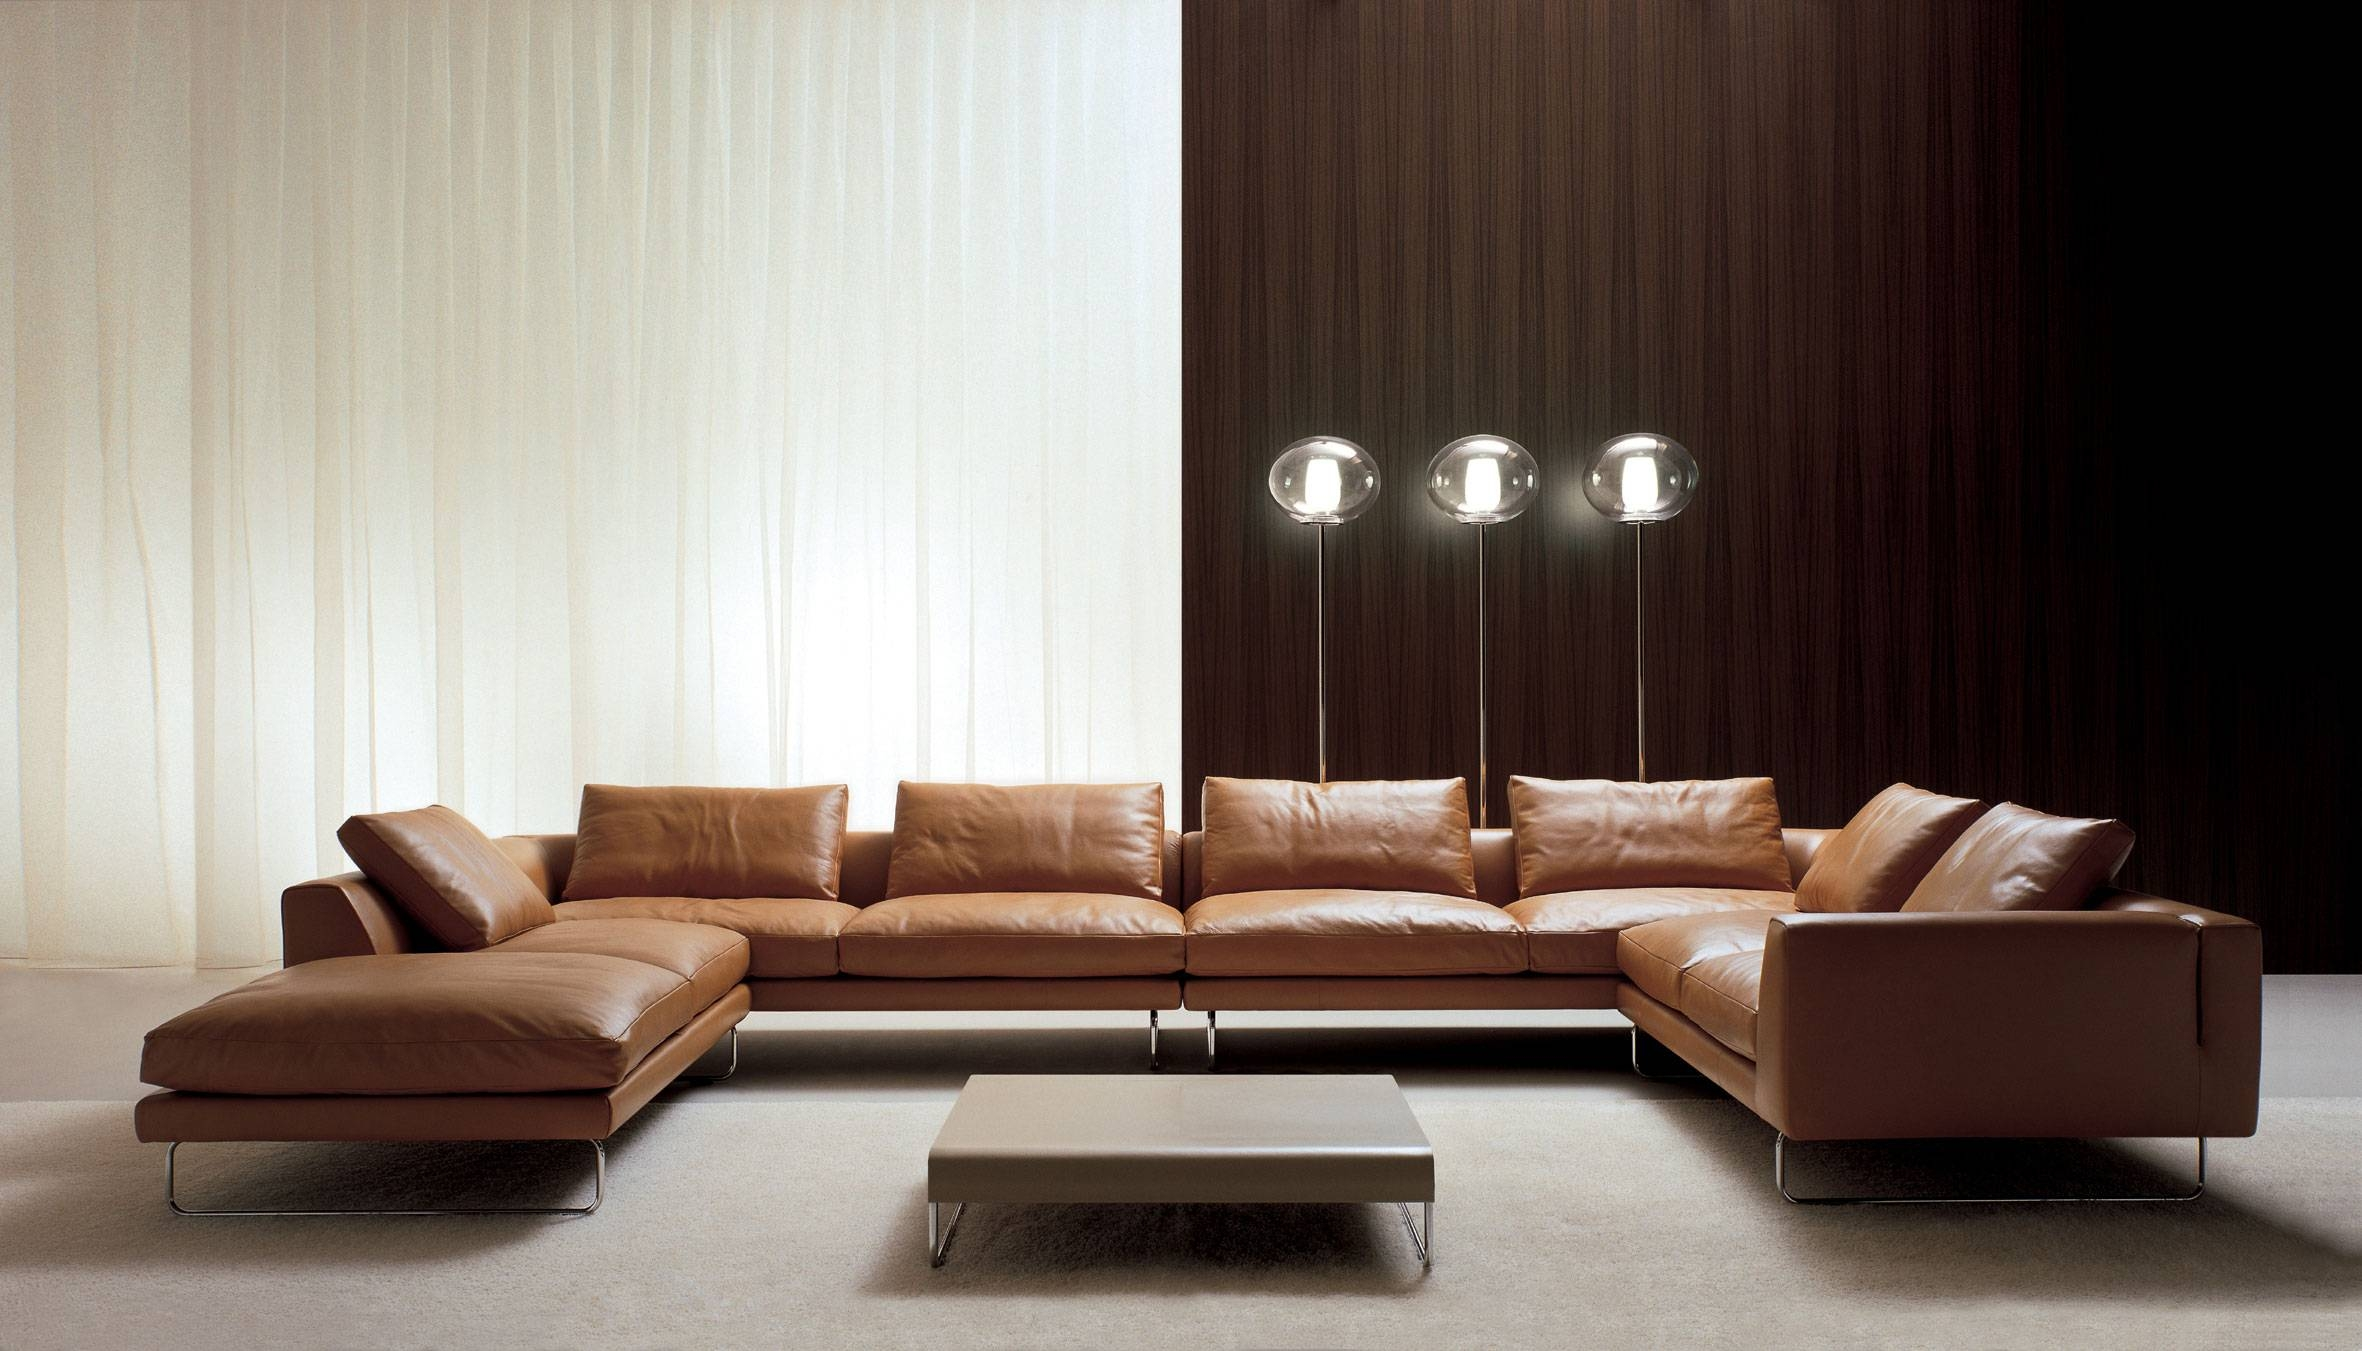 Outstanding Brown Leather U-Shaped Sectional Italian Sofa Design for U Shaped Leather Sectional Sofa : leather u shaped sectional - Sectionals, Sofas & Couches